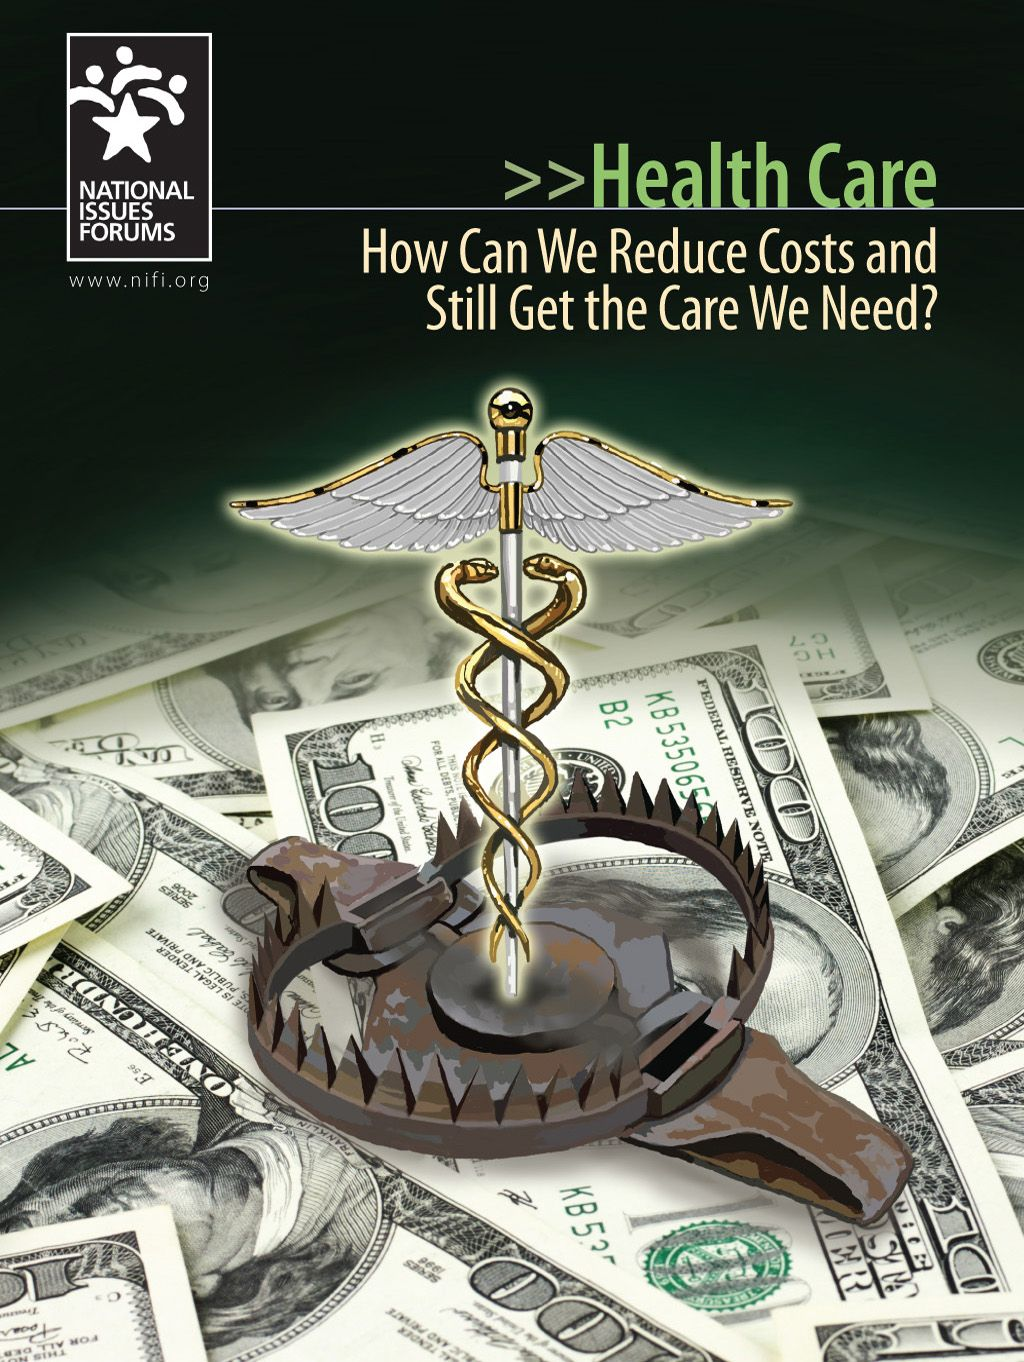 Health Care issue guide